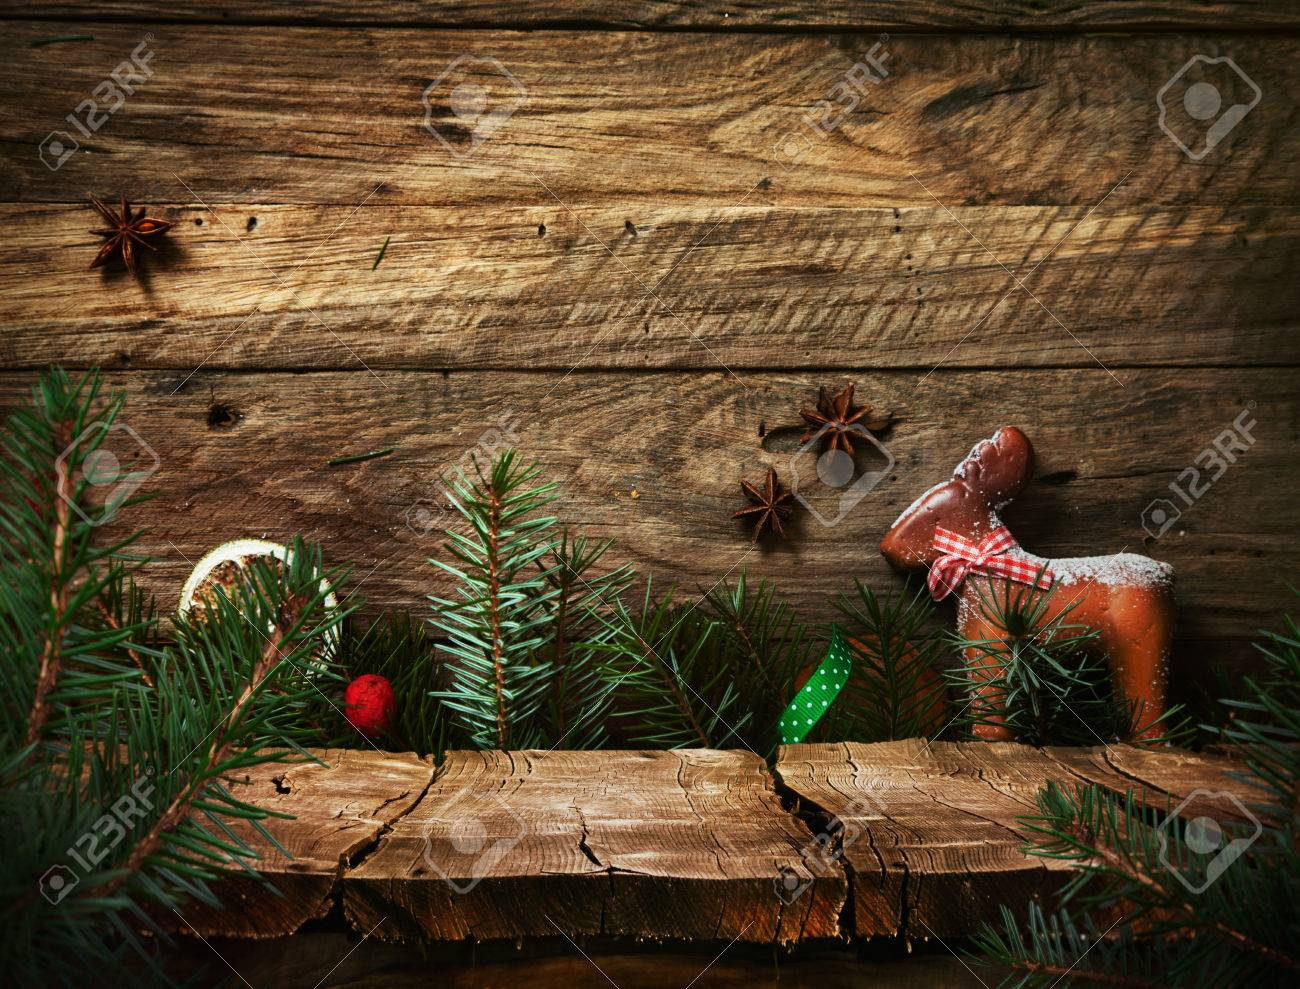 Christmas holiday background with empty wooden deck table over Christmas ornaments. Ready for product montage. Rustic vintage Xmas background. - 47308371